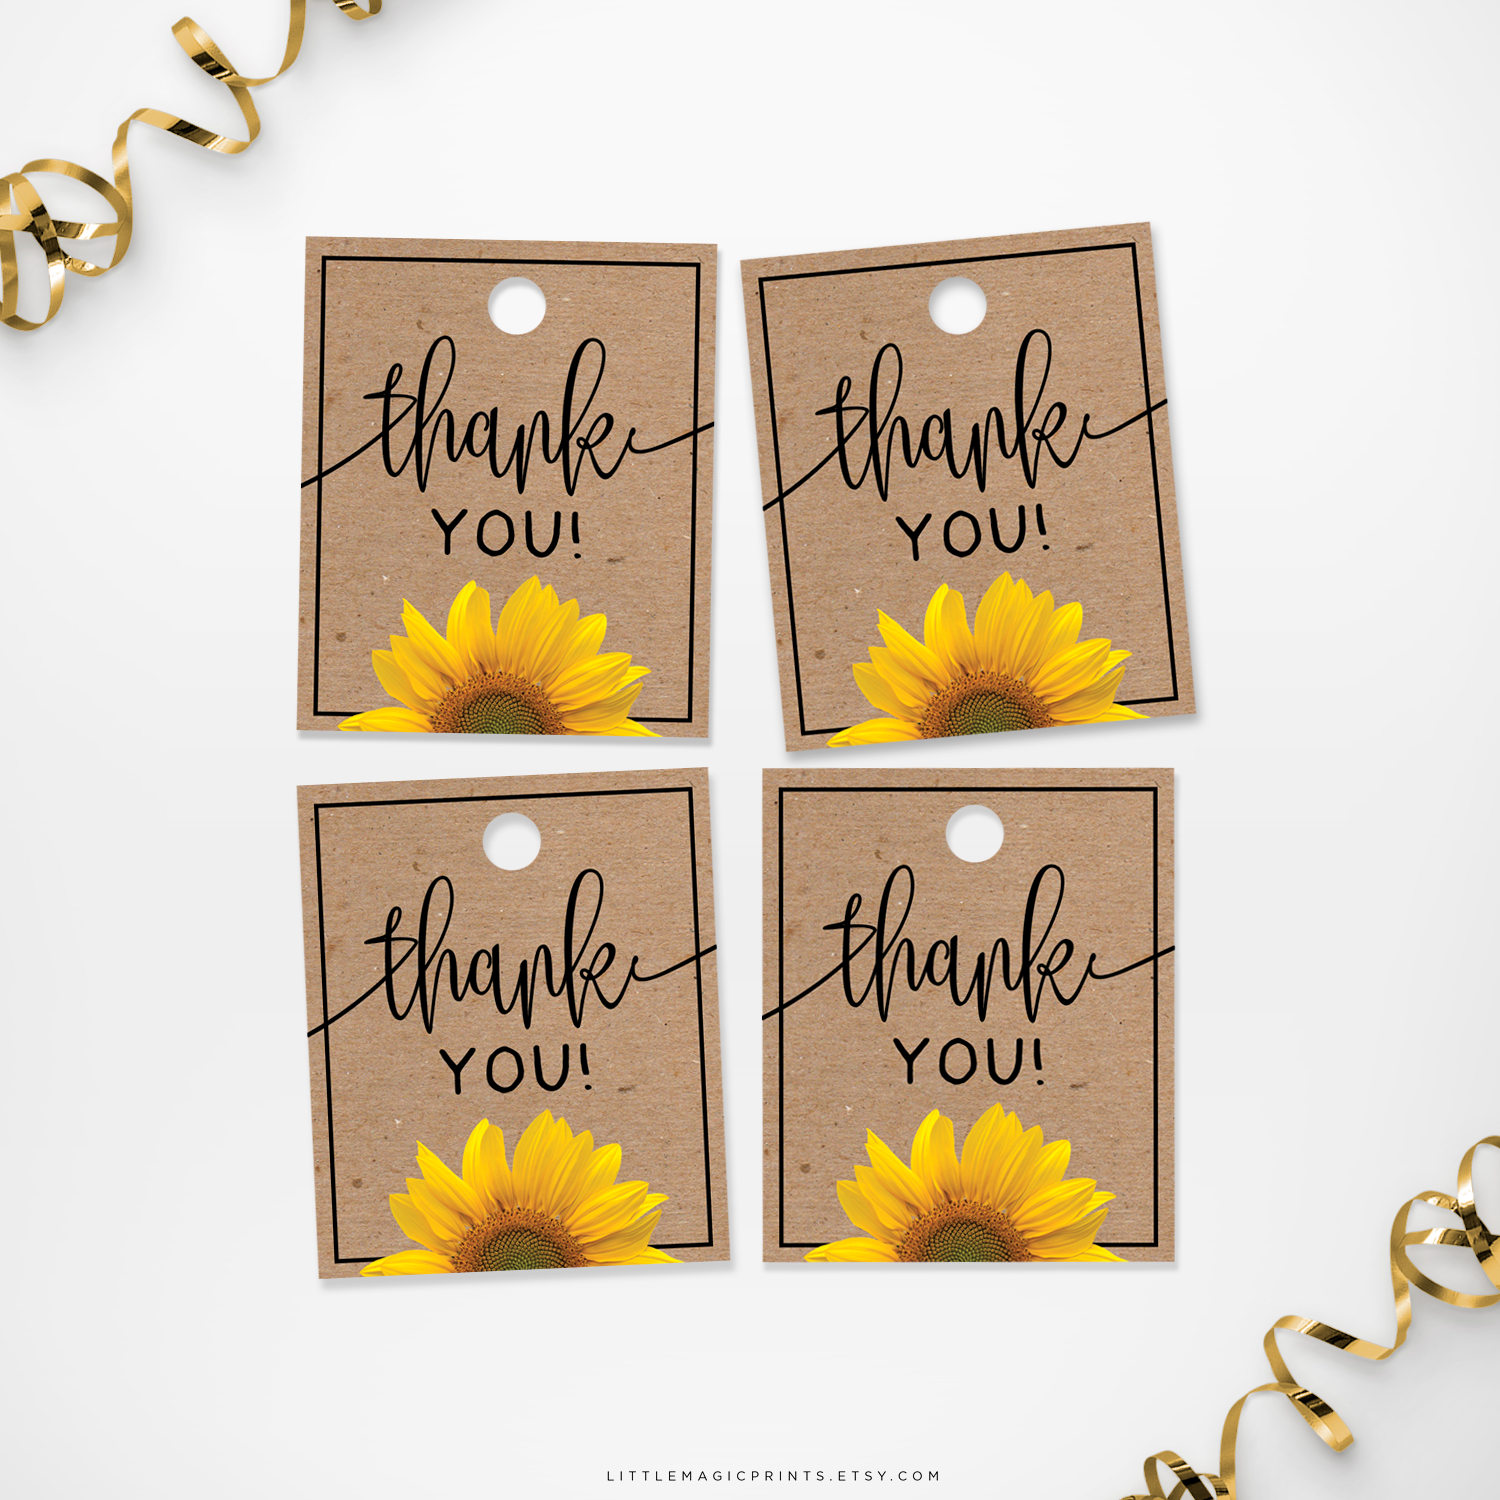 Rousing Printable Sunflower Thank You Tags Printable Sunflower Thank You Tags Little Magic Prints Thank You Tags Pdf Thank You Tags Teachers inspiration Thank You Tags